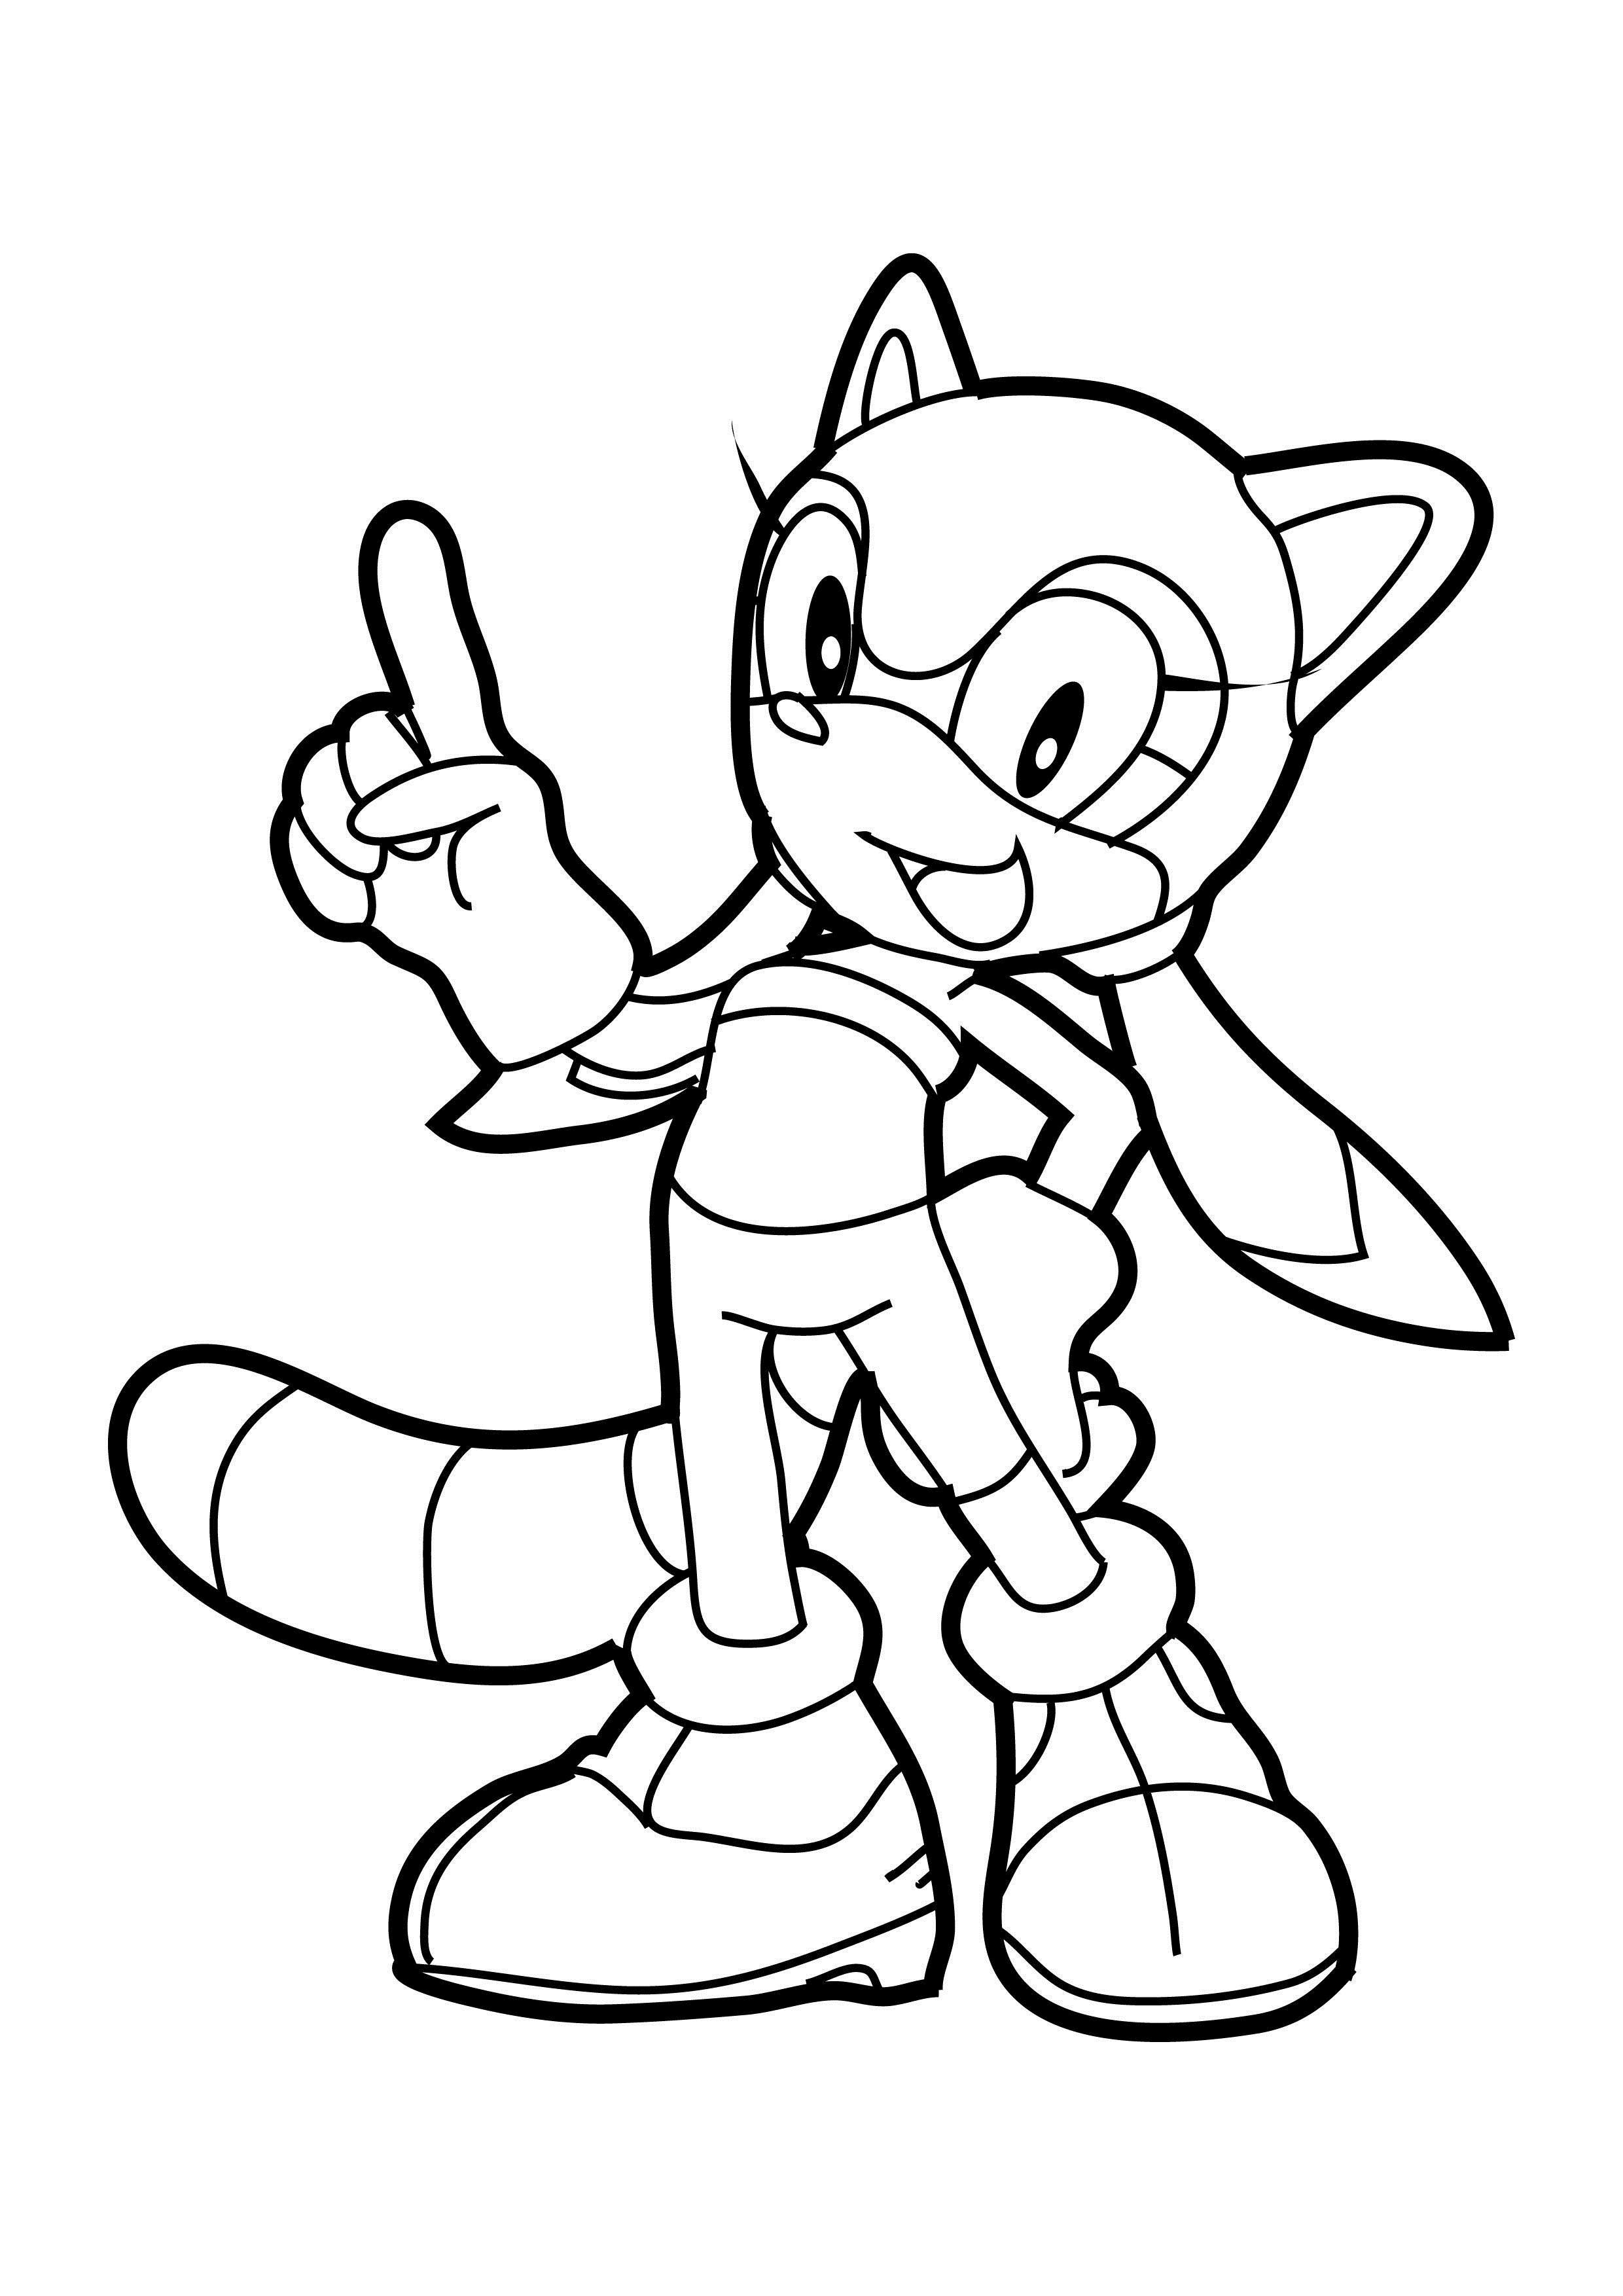 Metal Sonic Coloring Pages In 2020 Hedgehog Colors Cartoon Coloring Pages Animal Coloring Pages